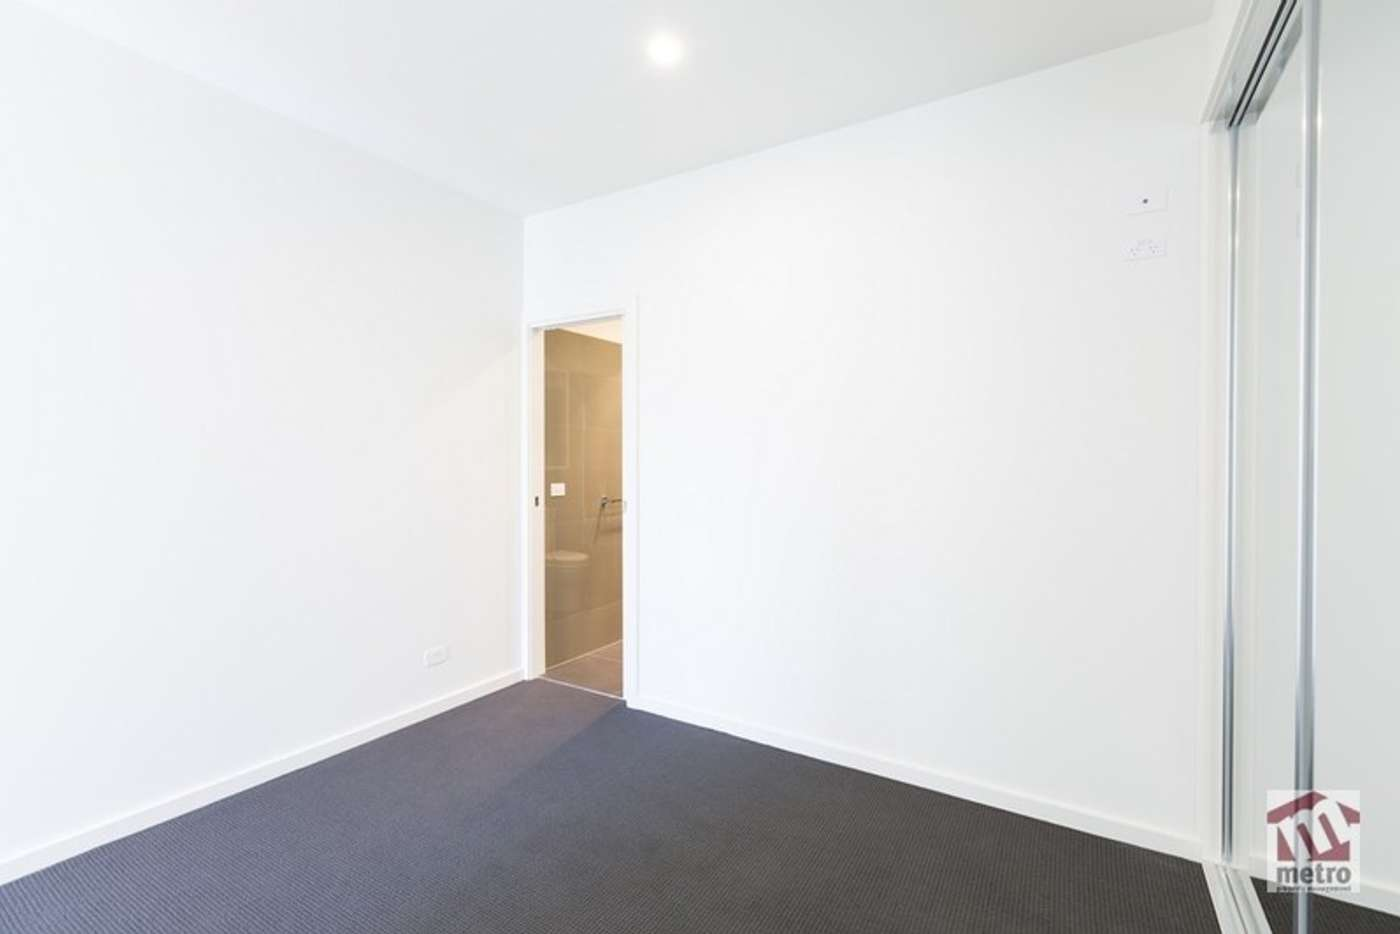 Sixth view of Homely apartment listing, 206A/23-35 Cumberland Road, Pascoe Vale VIC 3044